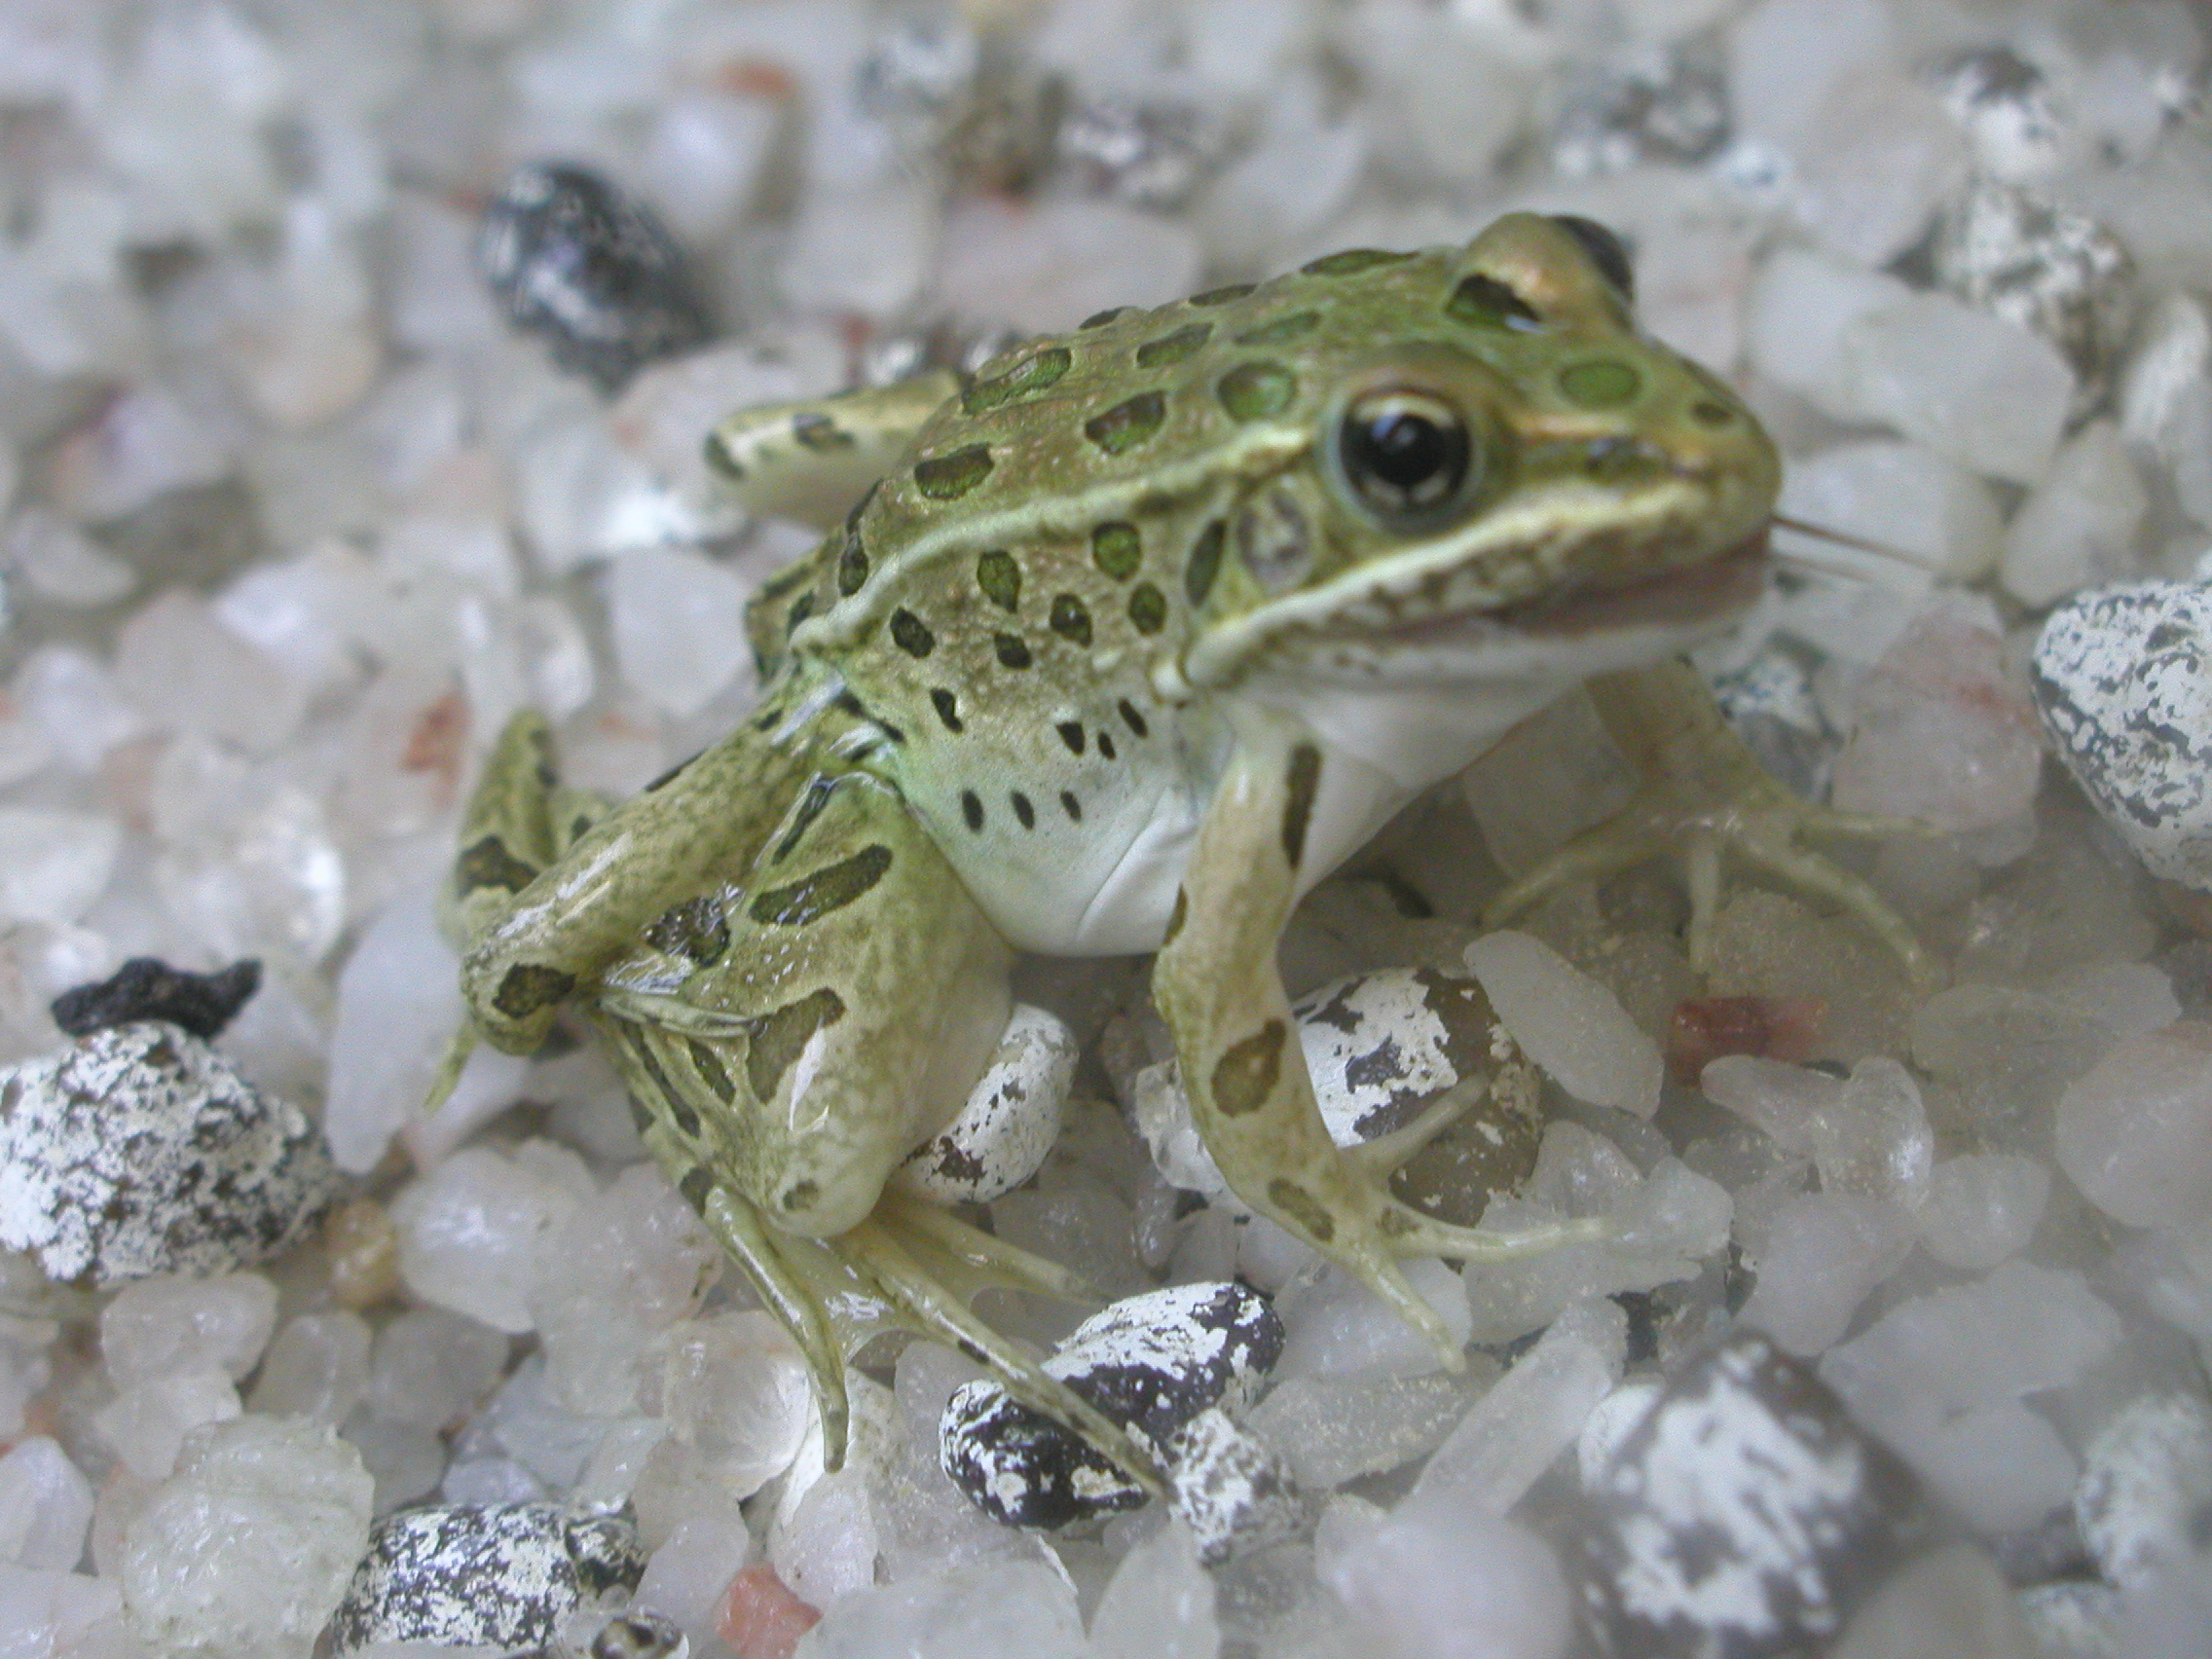 Studies offer new insights into causes of deformed frogs